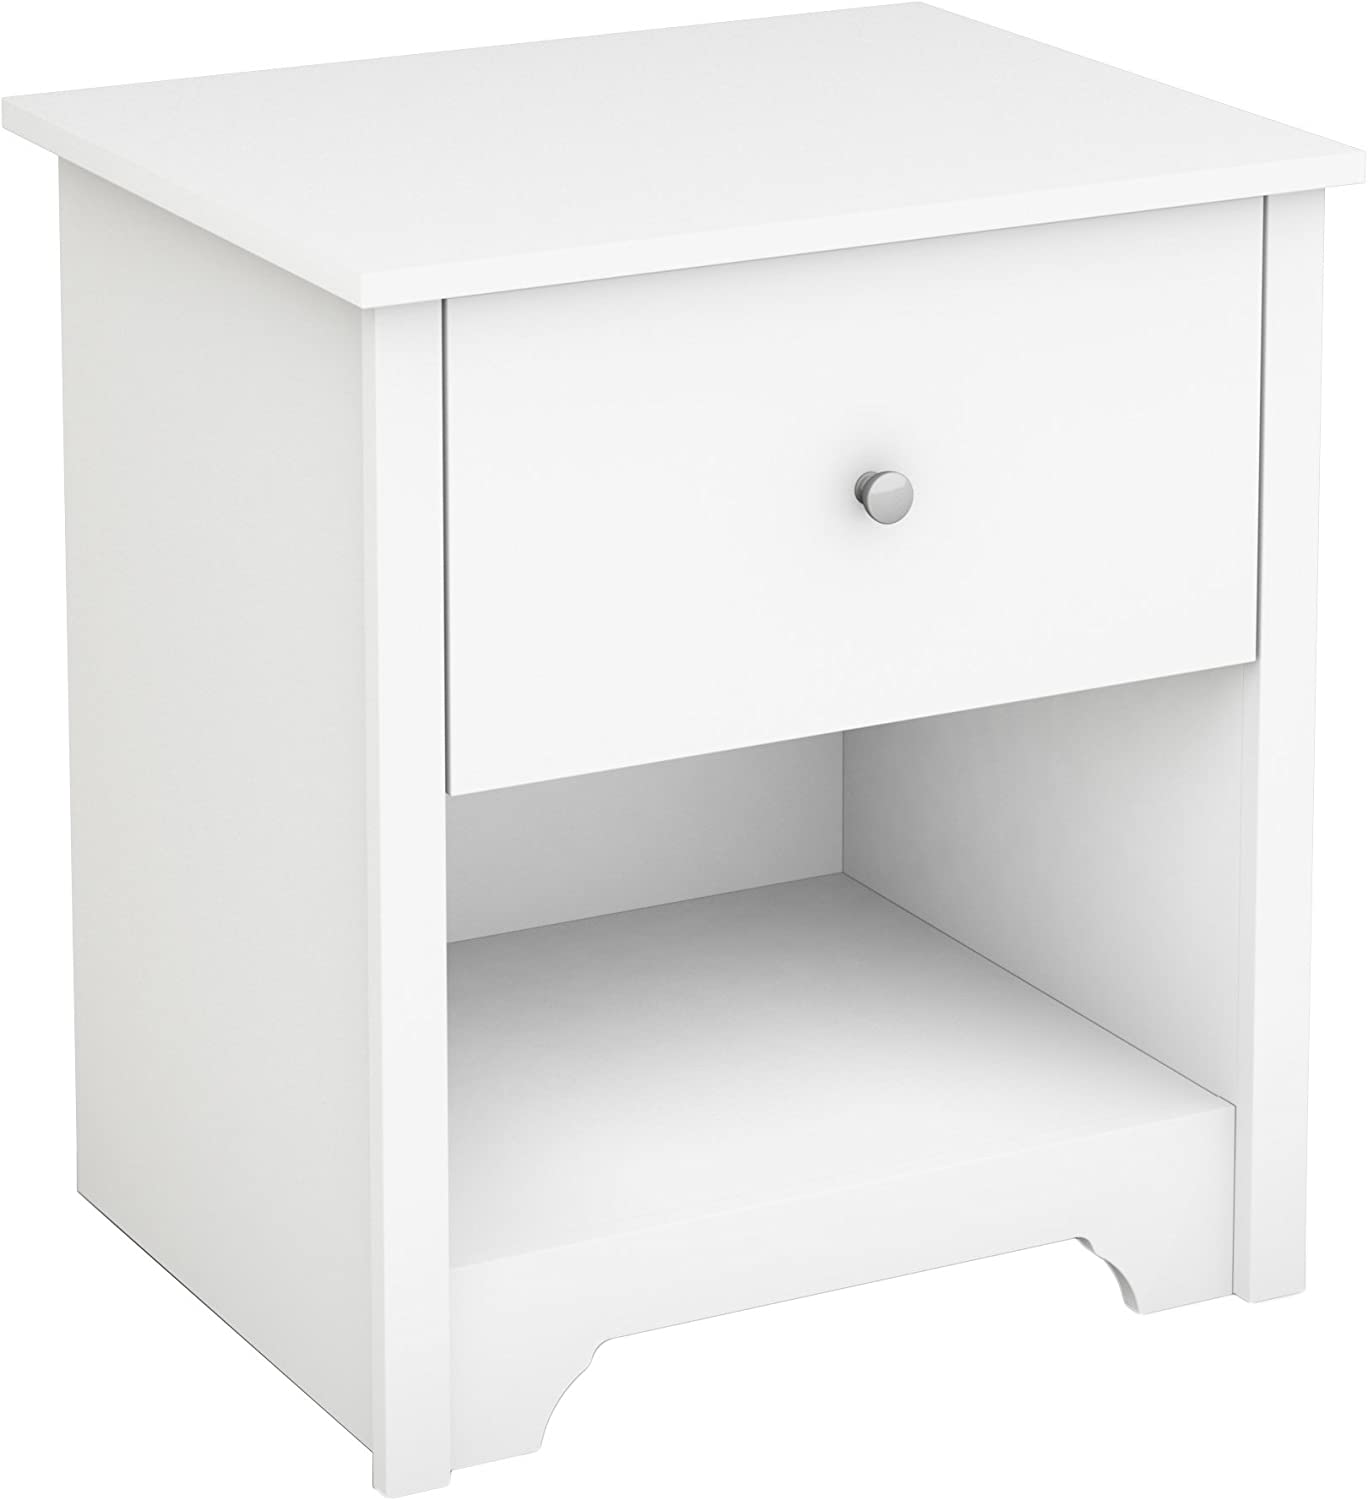 South Shore Vito 1-Drawer Nightstand, Pure White with Matte Nickel Handles